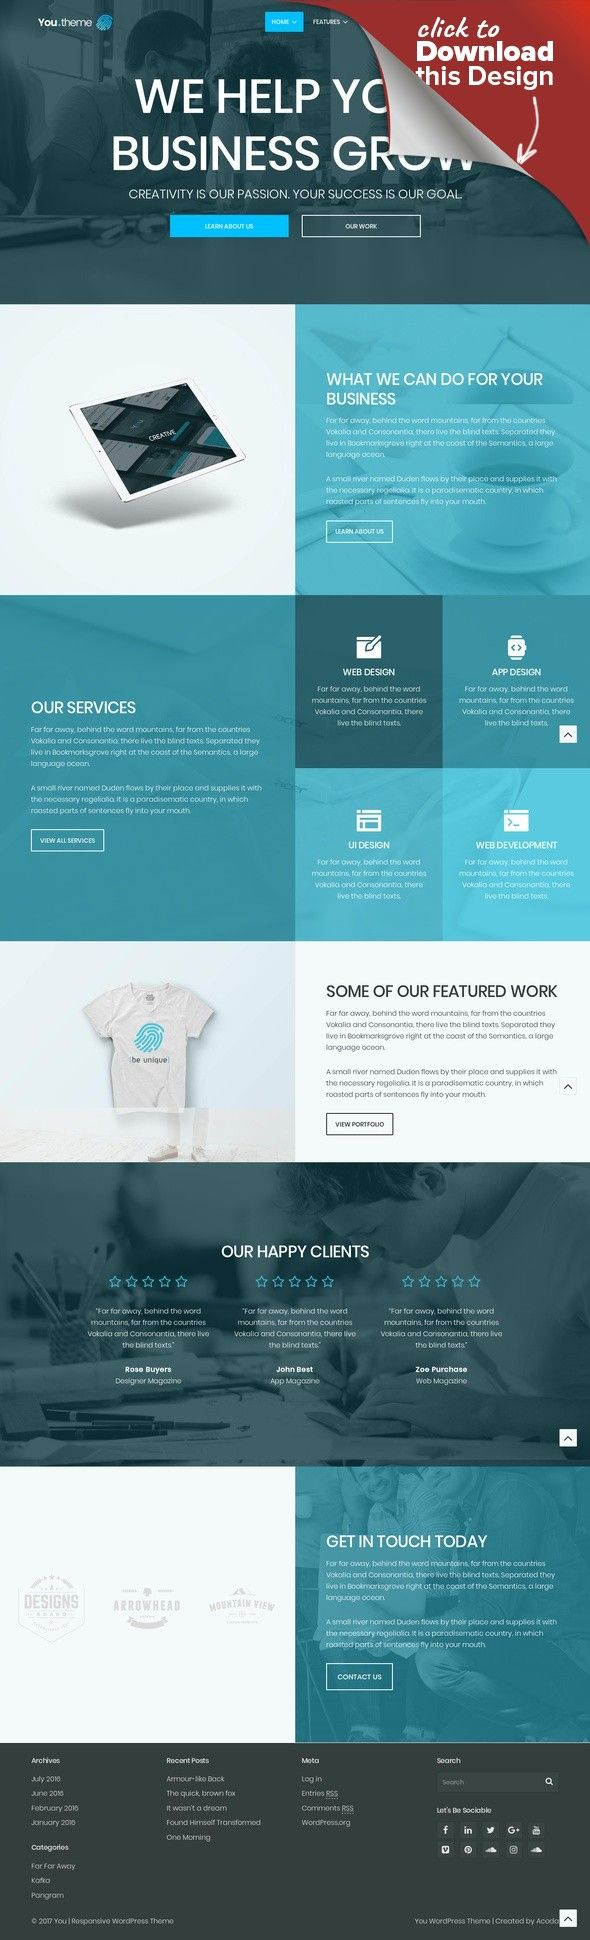 You | Multi-Purpose Responsive WordPress Theme blog, business theme, corporate, creative, ecommerce, magazine, modern, multipurpose, one page, photography, portfolio, shop You – a premium responsive WordPress theme best suited for business, ecommerce, portfolio, photography & other projects requiring a WordPress template. Last Update June 19th, 2017 Create Any Design If you're looking to create a Personal Blog, News, Photography, Po...